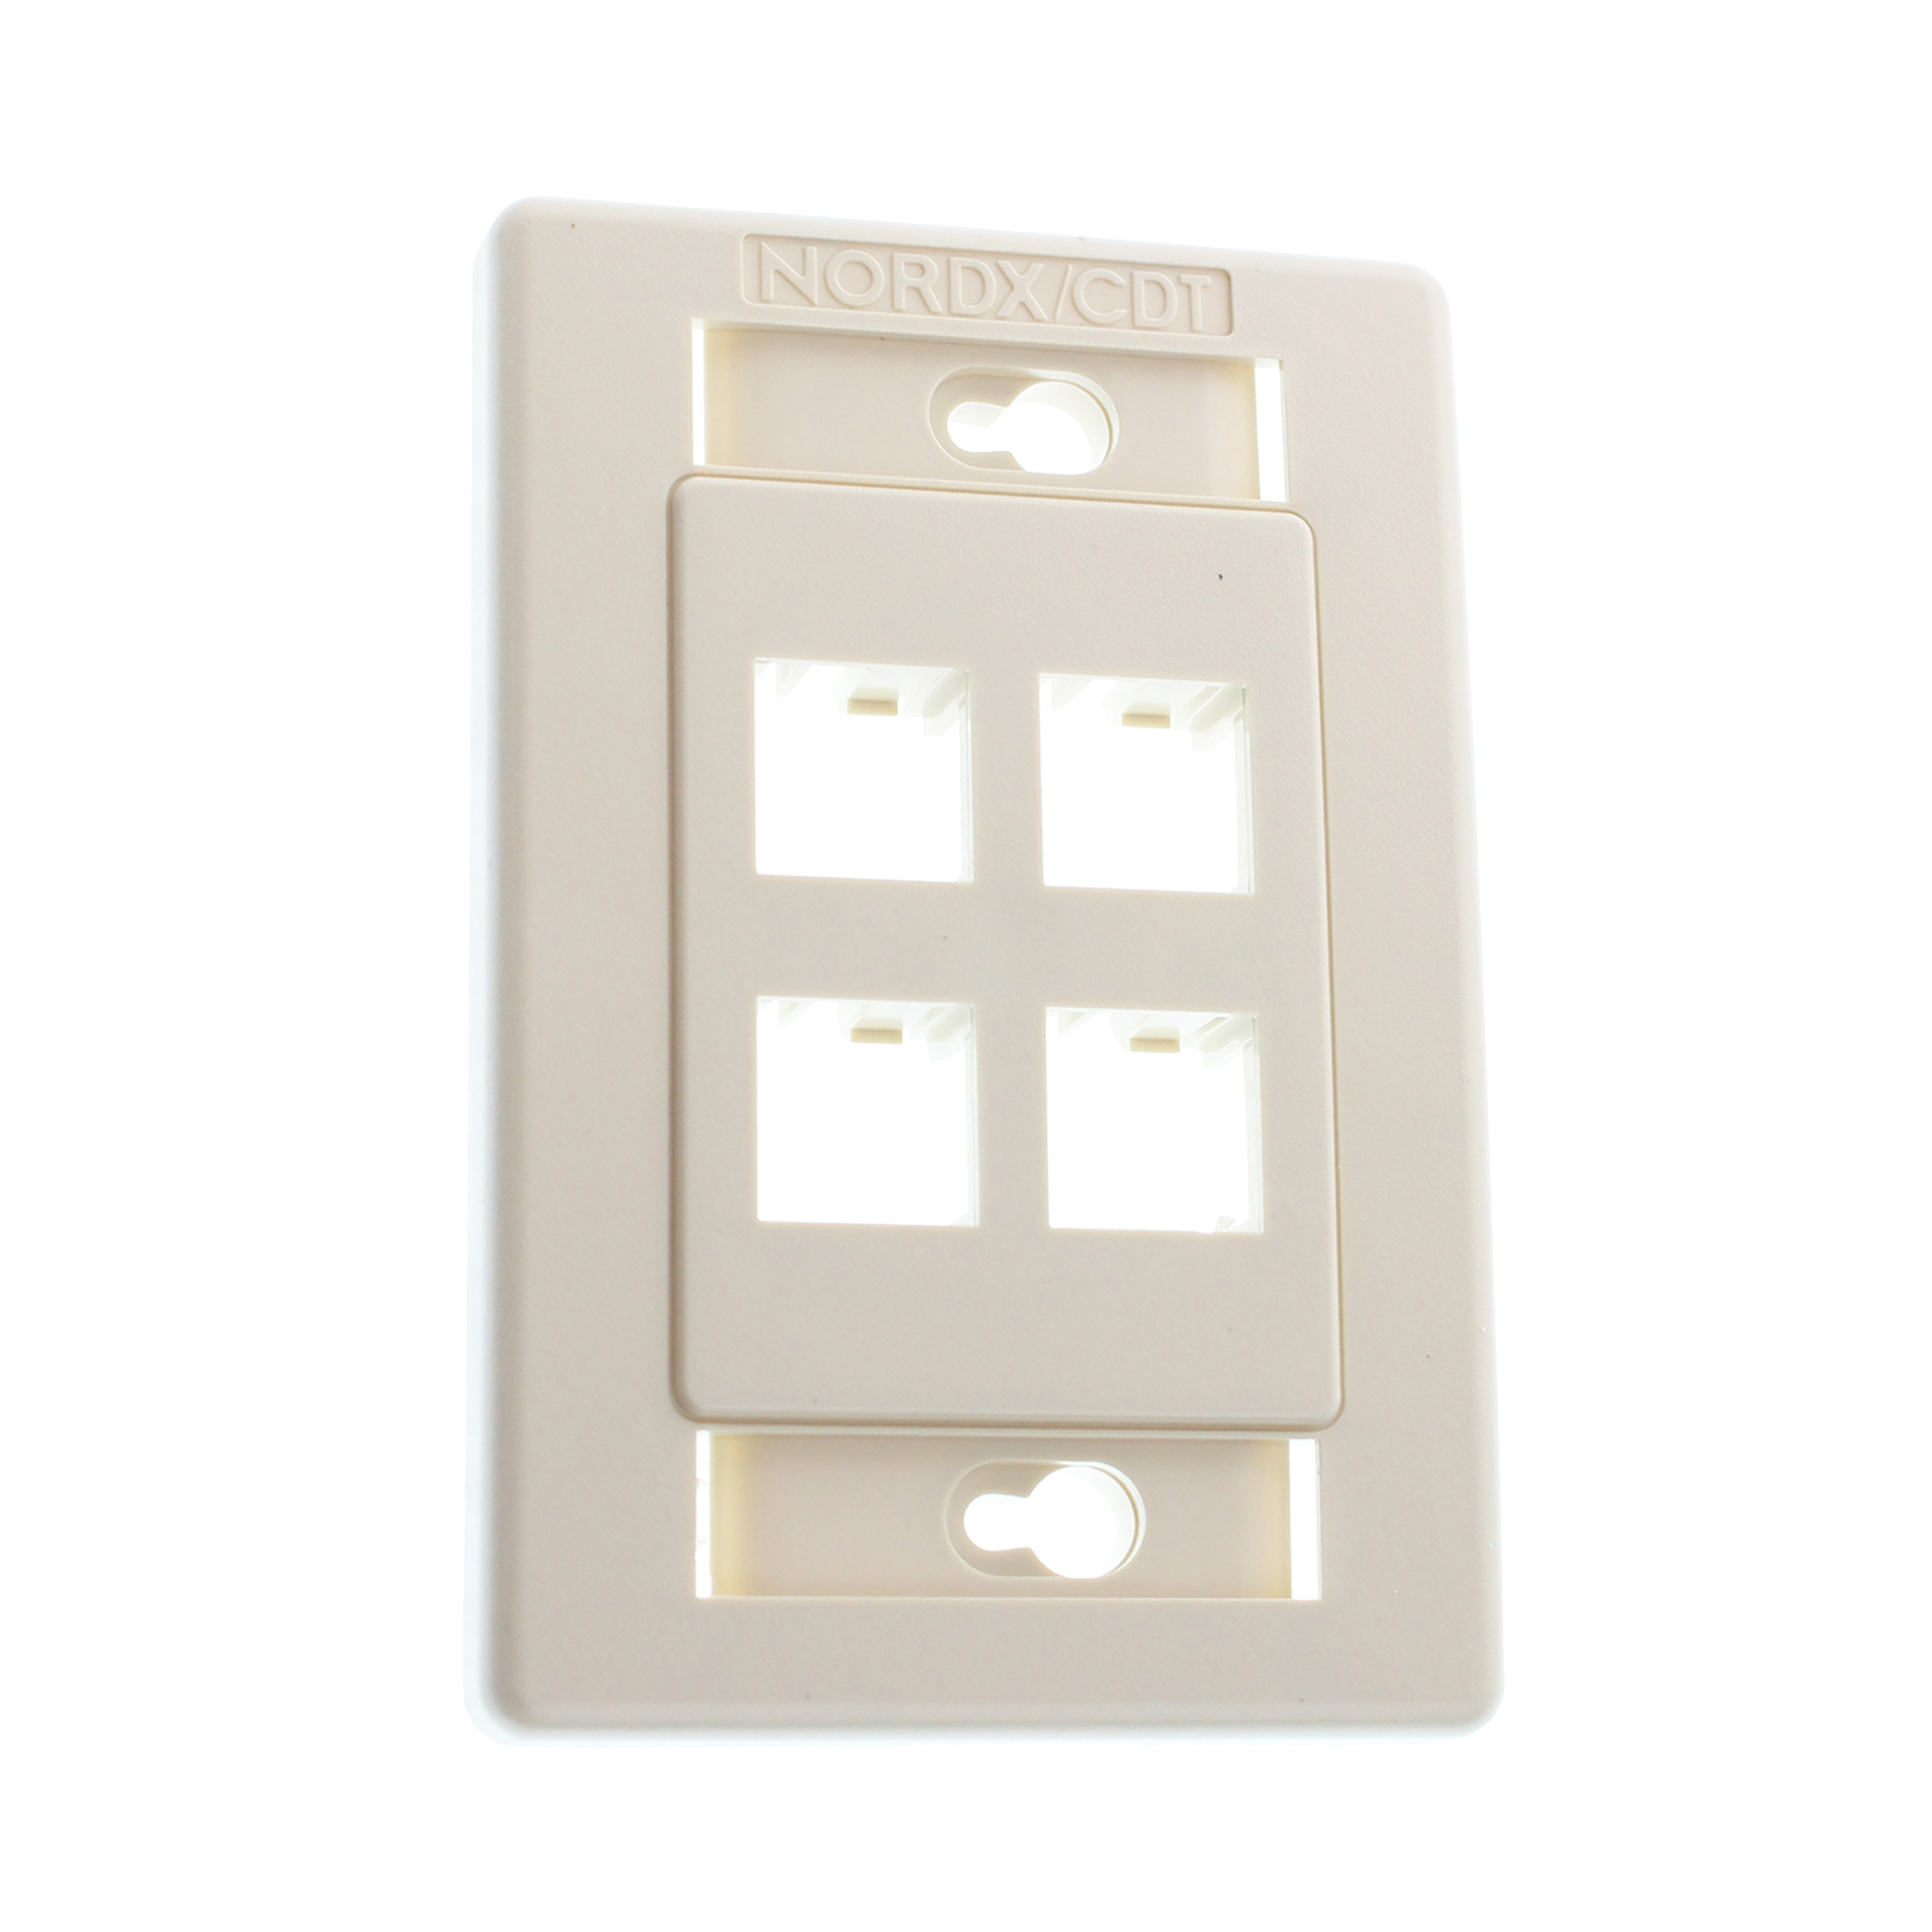 BELDEN AX101436 FLUSH MOUNT NETWORK FACEPLATE, 4 PORT, MDVO, ALMOND ...